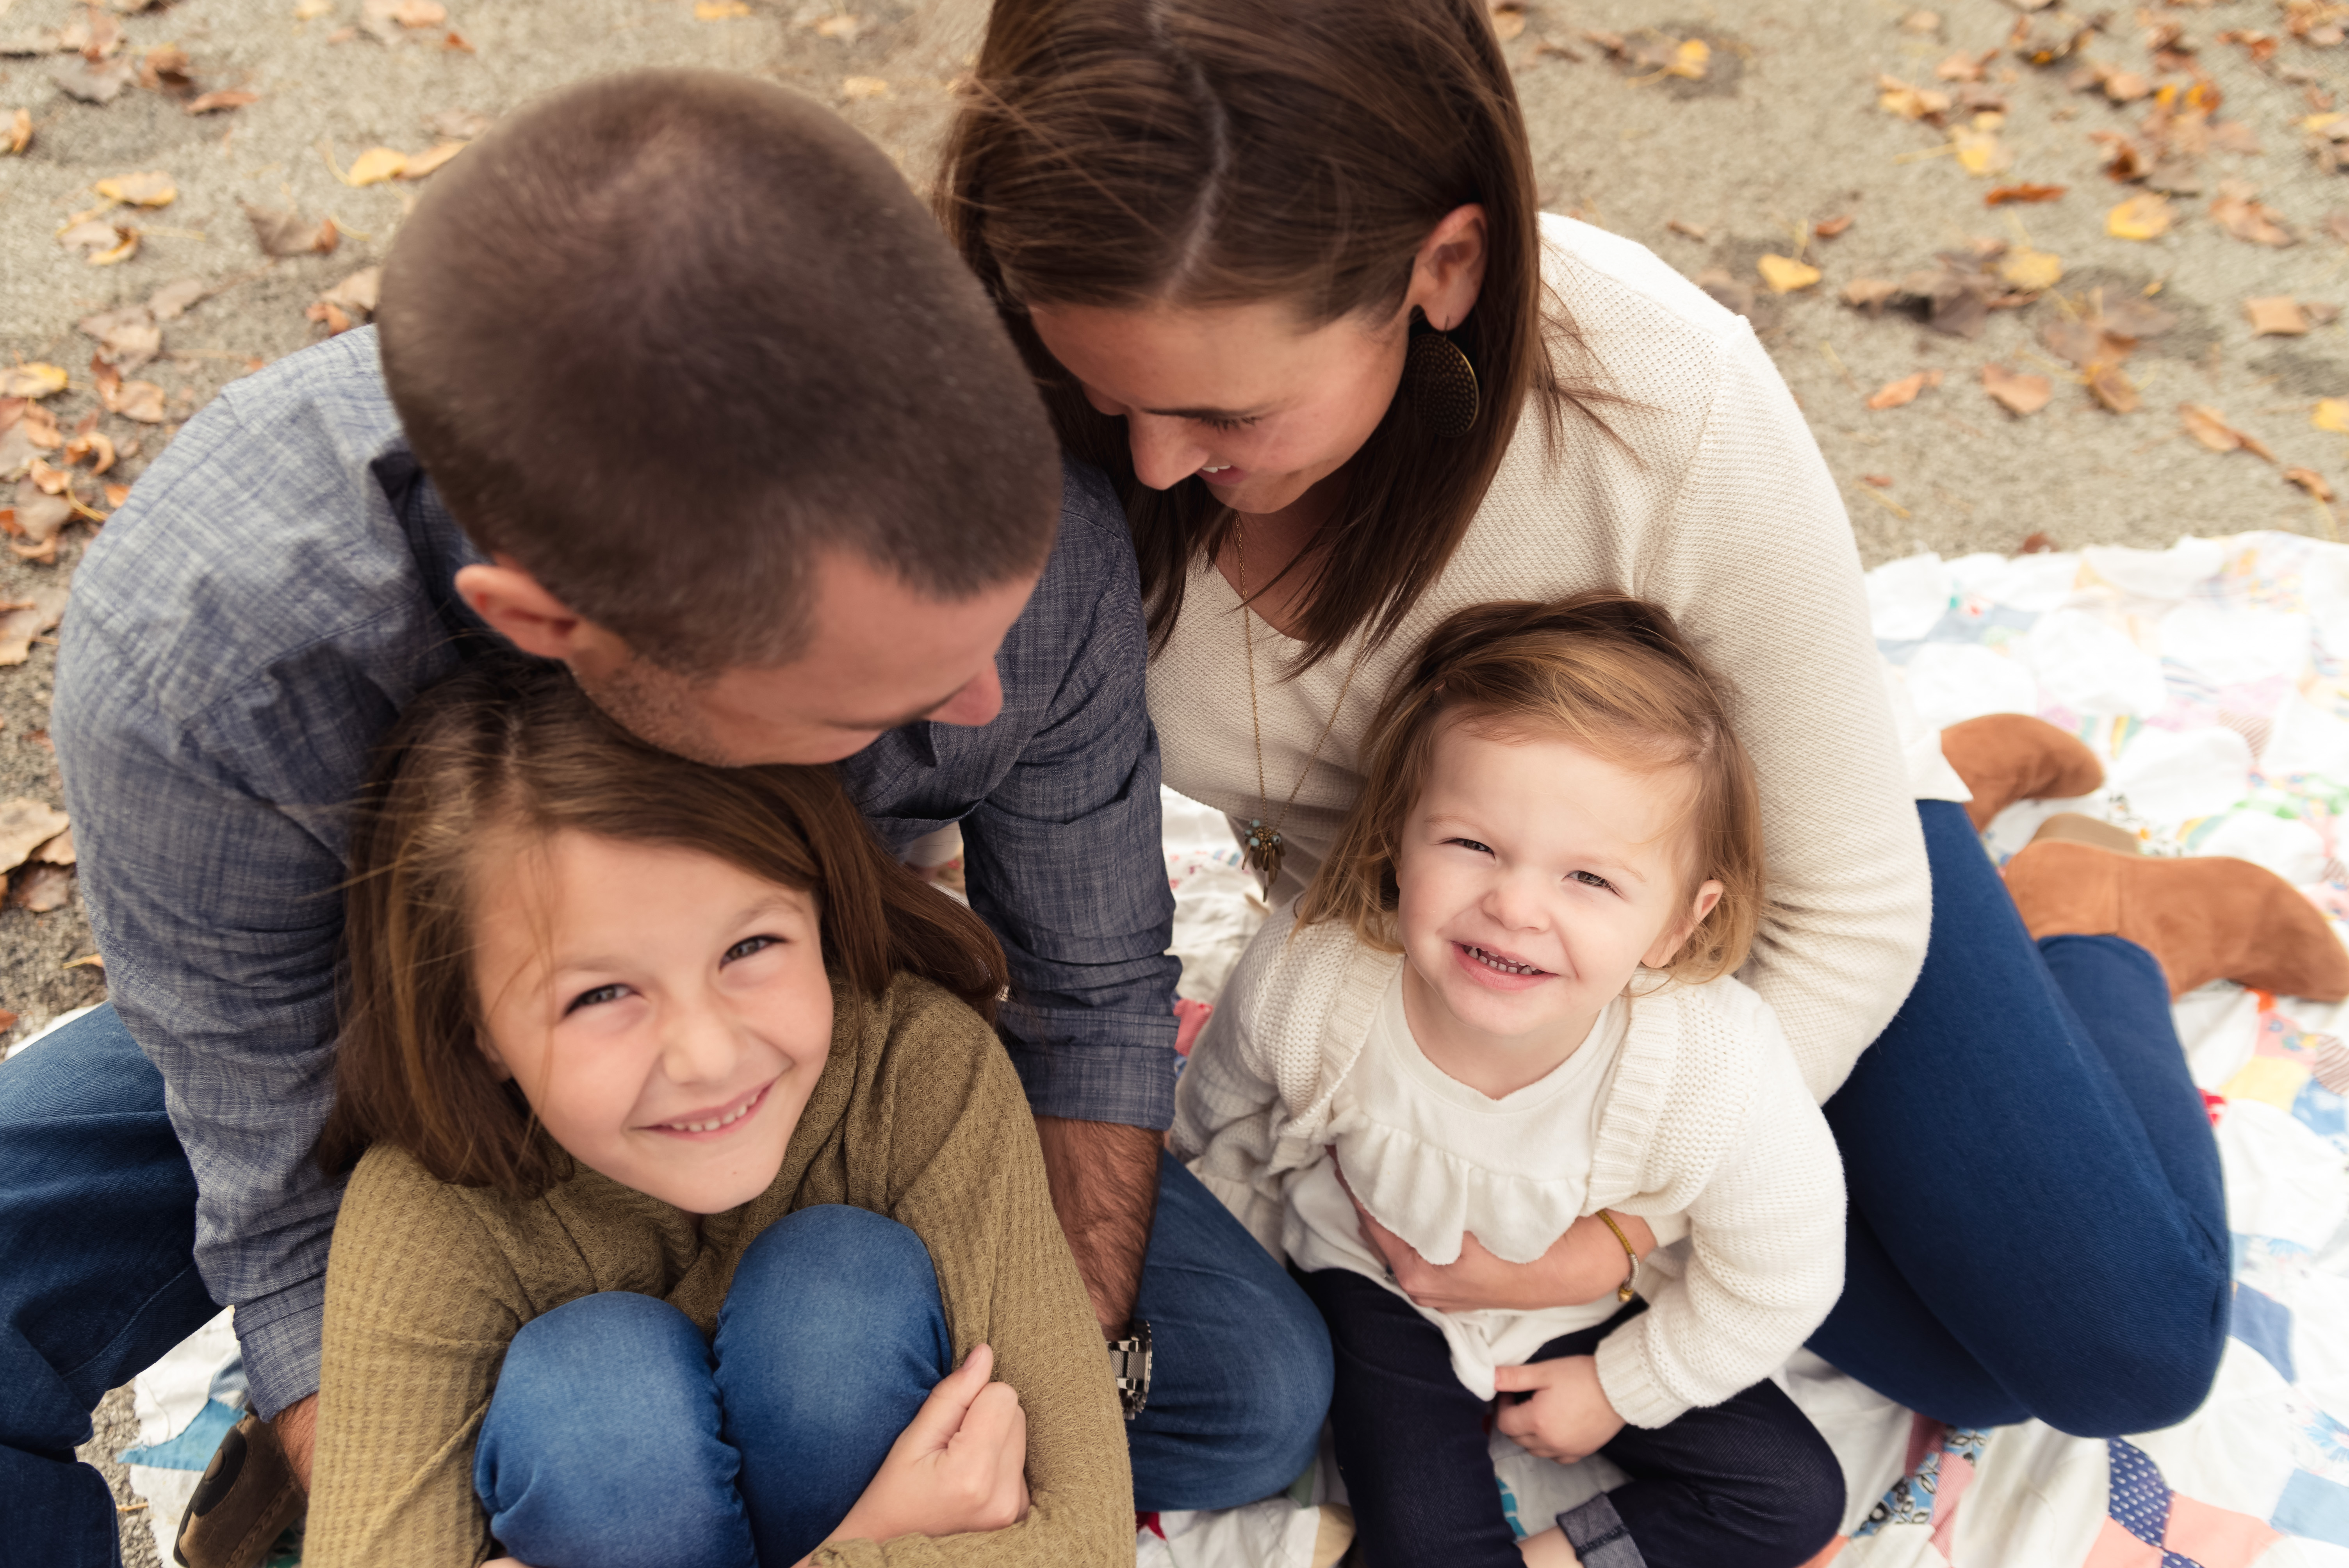 A sweet family snuggles and laughs during their Cedar Rapids photography session